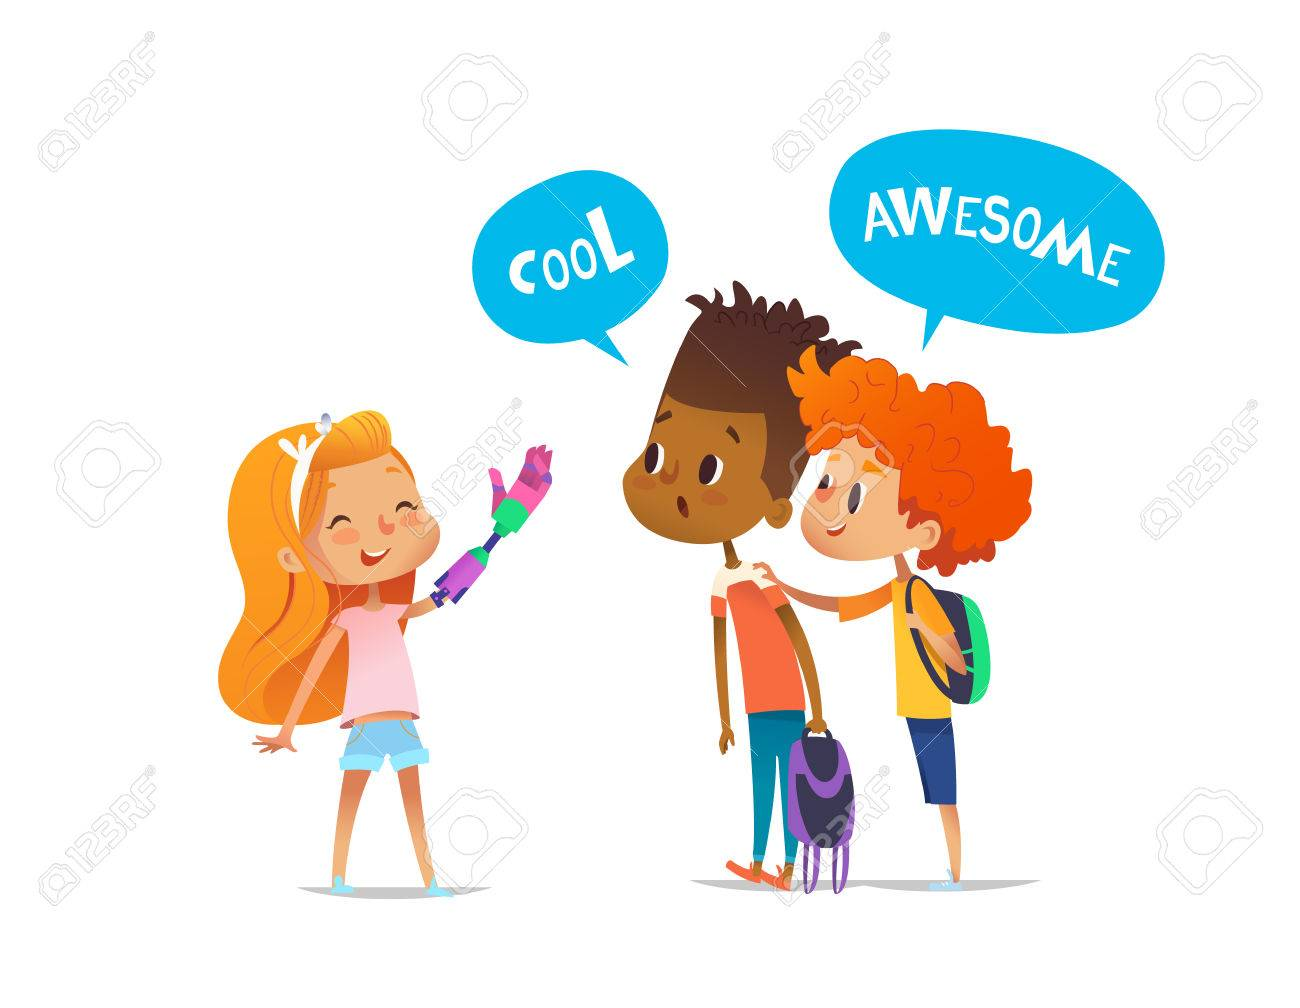 Smiling amputee girl shows robotic arm to two classmates, boys amazedly look at it and encourage her. Childrens friendship concept. Vector illustration for banner, website, advertisement, postcard - 78978742